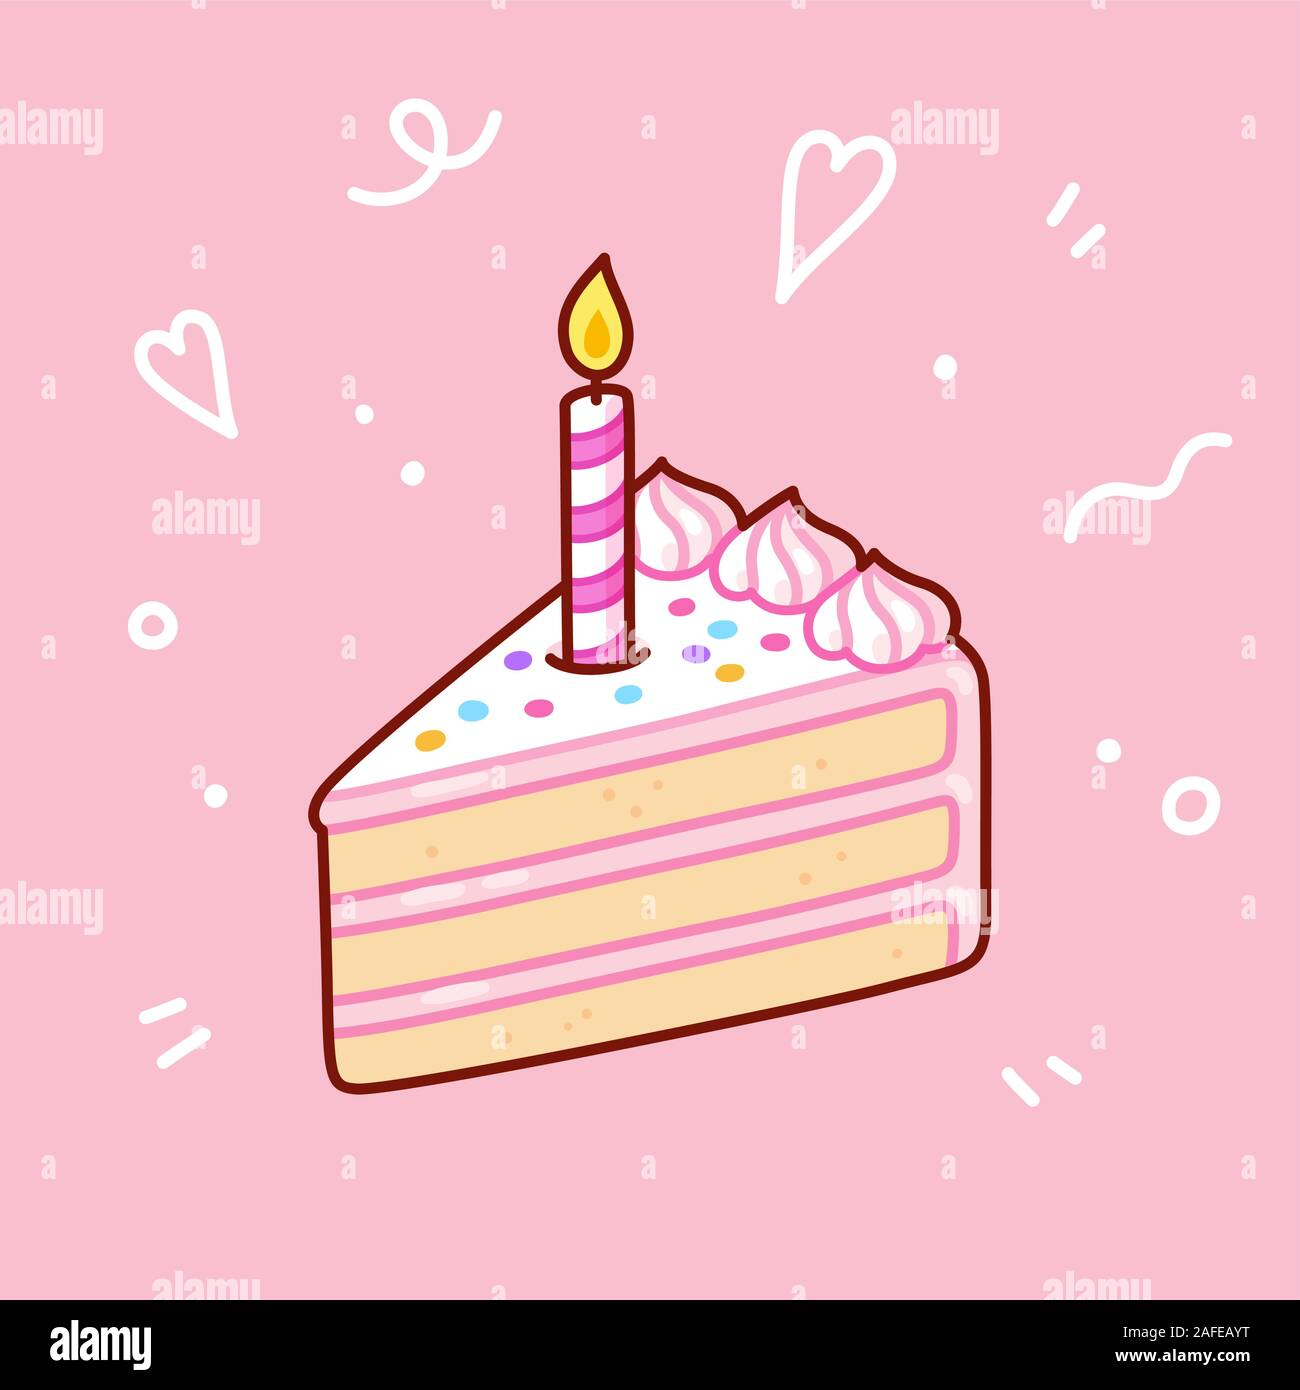 Sensational Slice Of Birthday Cake With Candle Happy Birthday Greeting Card Funny Birthday Cards Online Inifofree Goldxyz